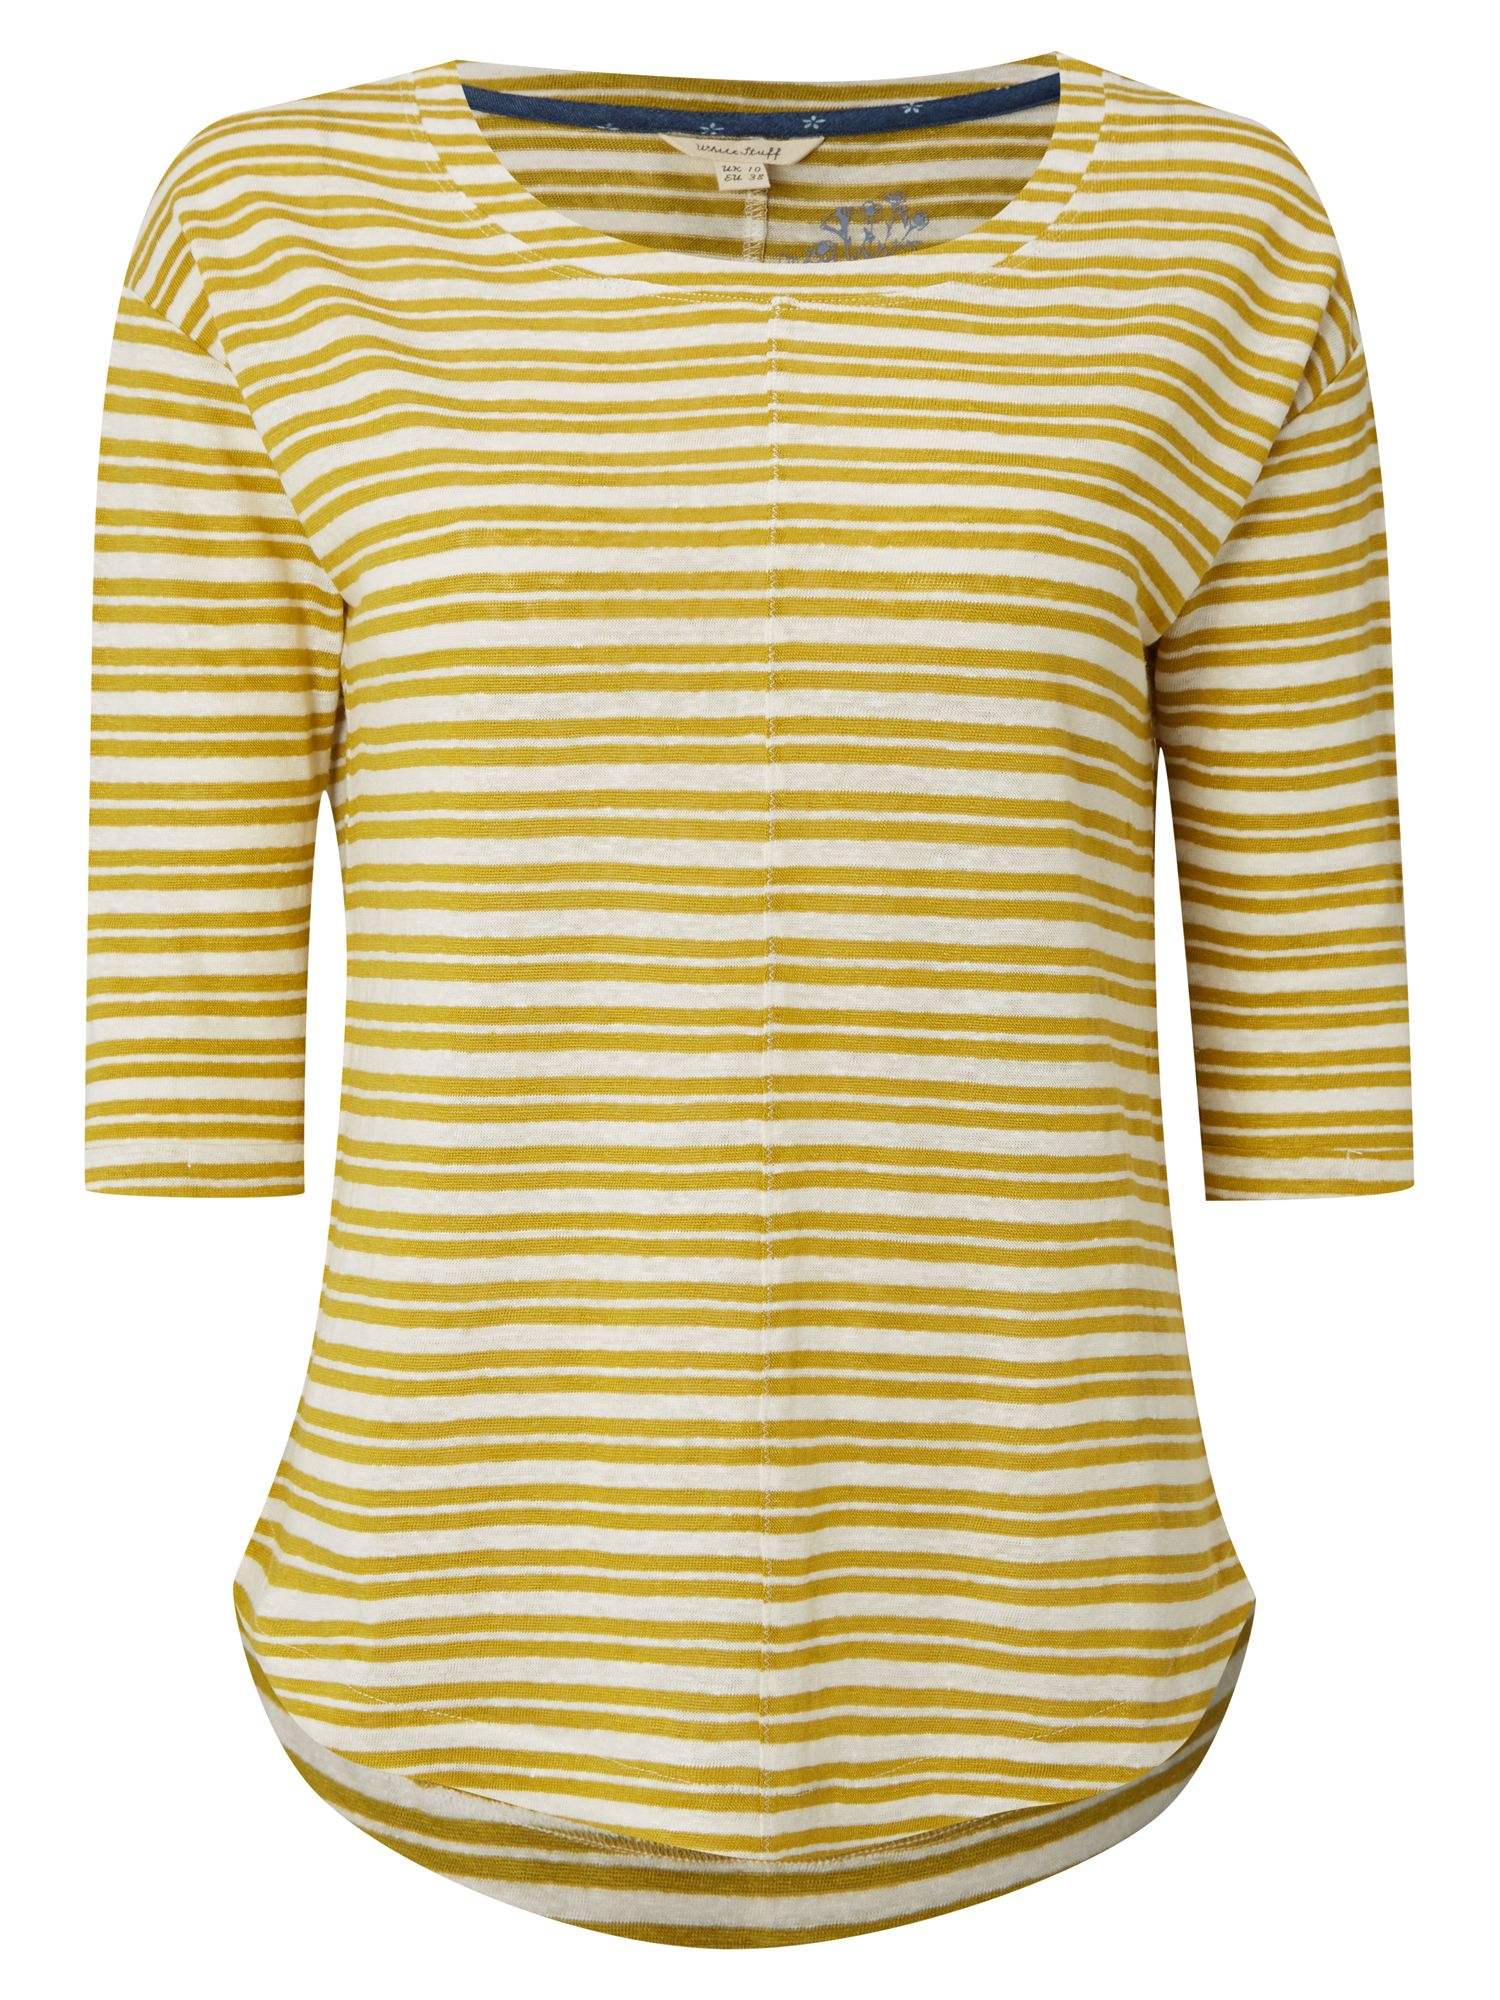 White Stuff Hadley Stripe Jersey Tee, Yellow